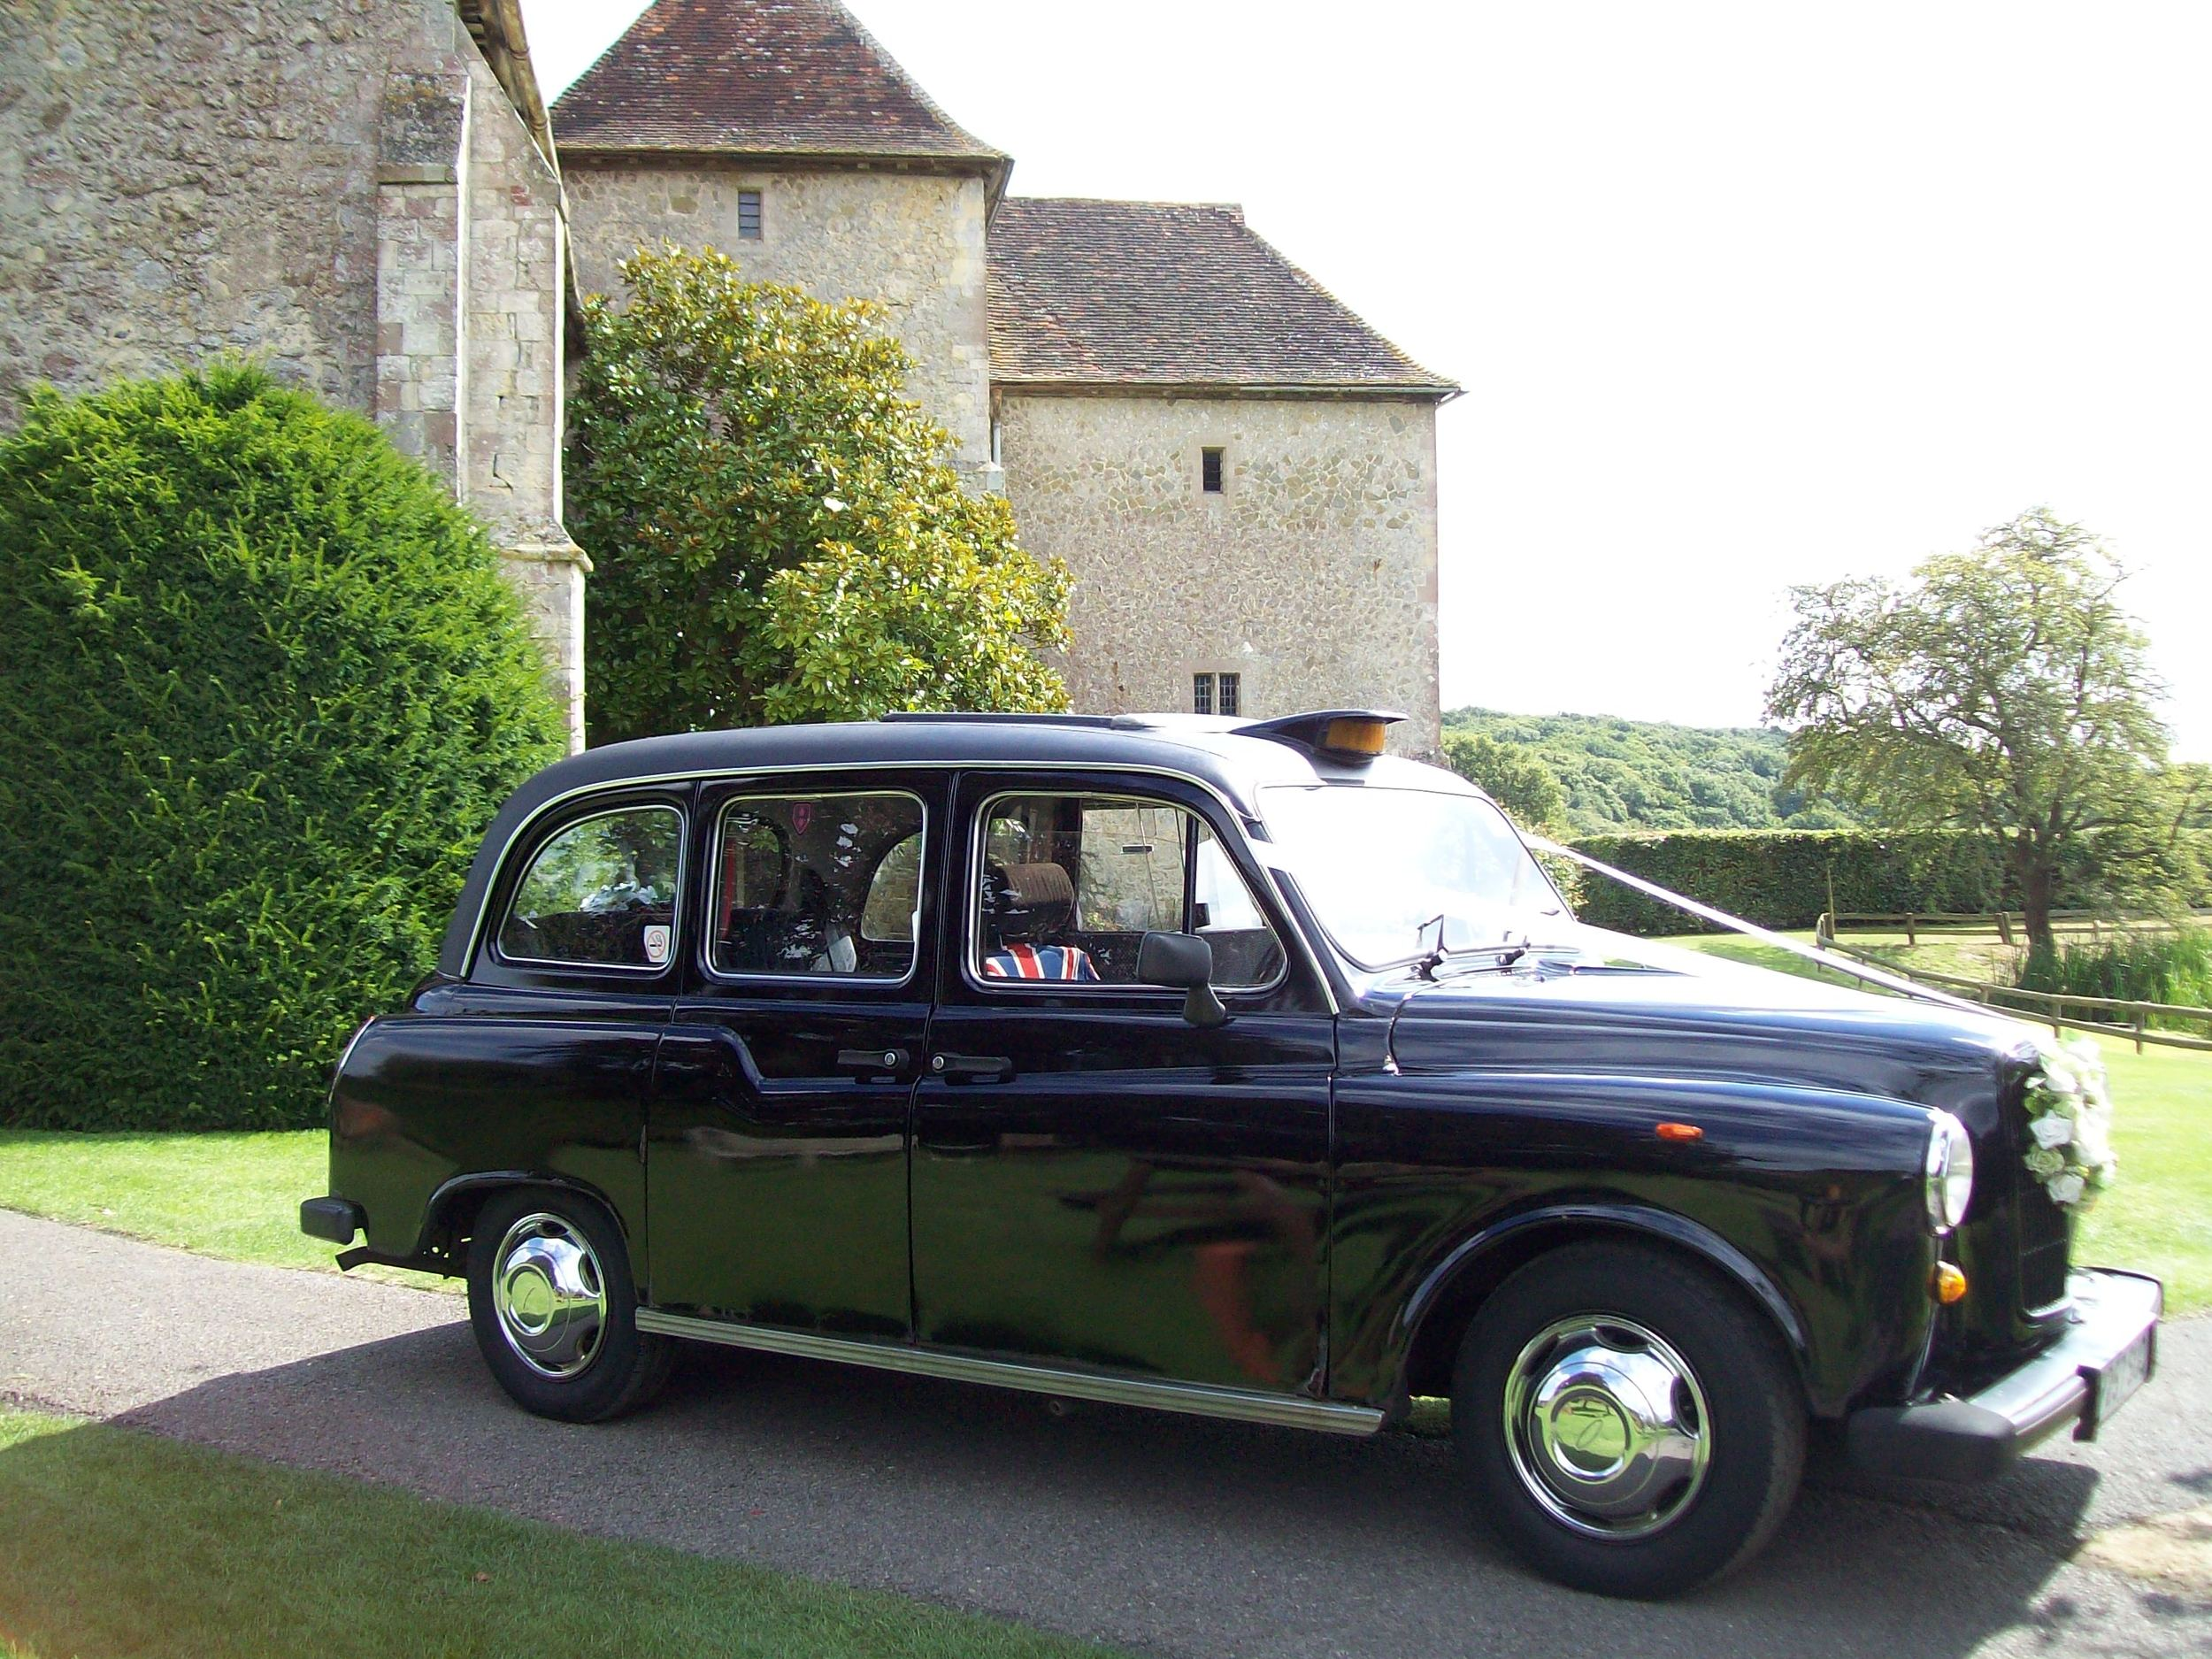 Black London Fairway Taxi